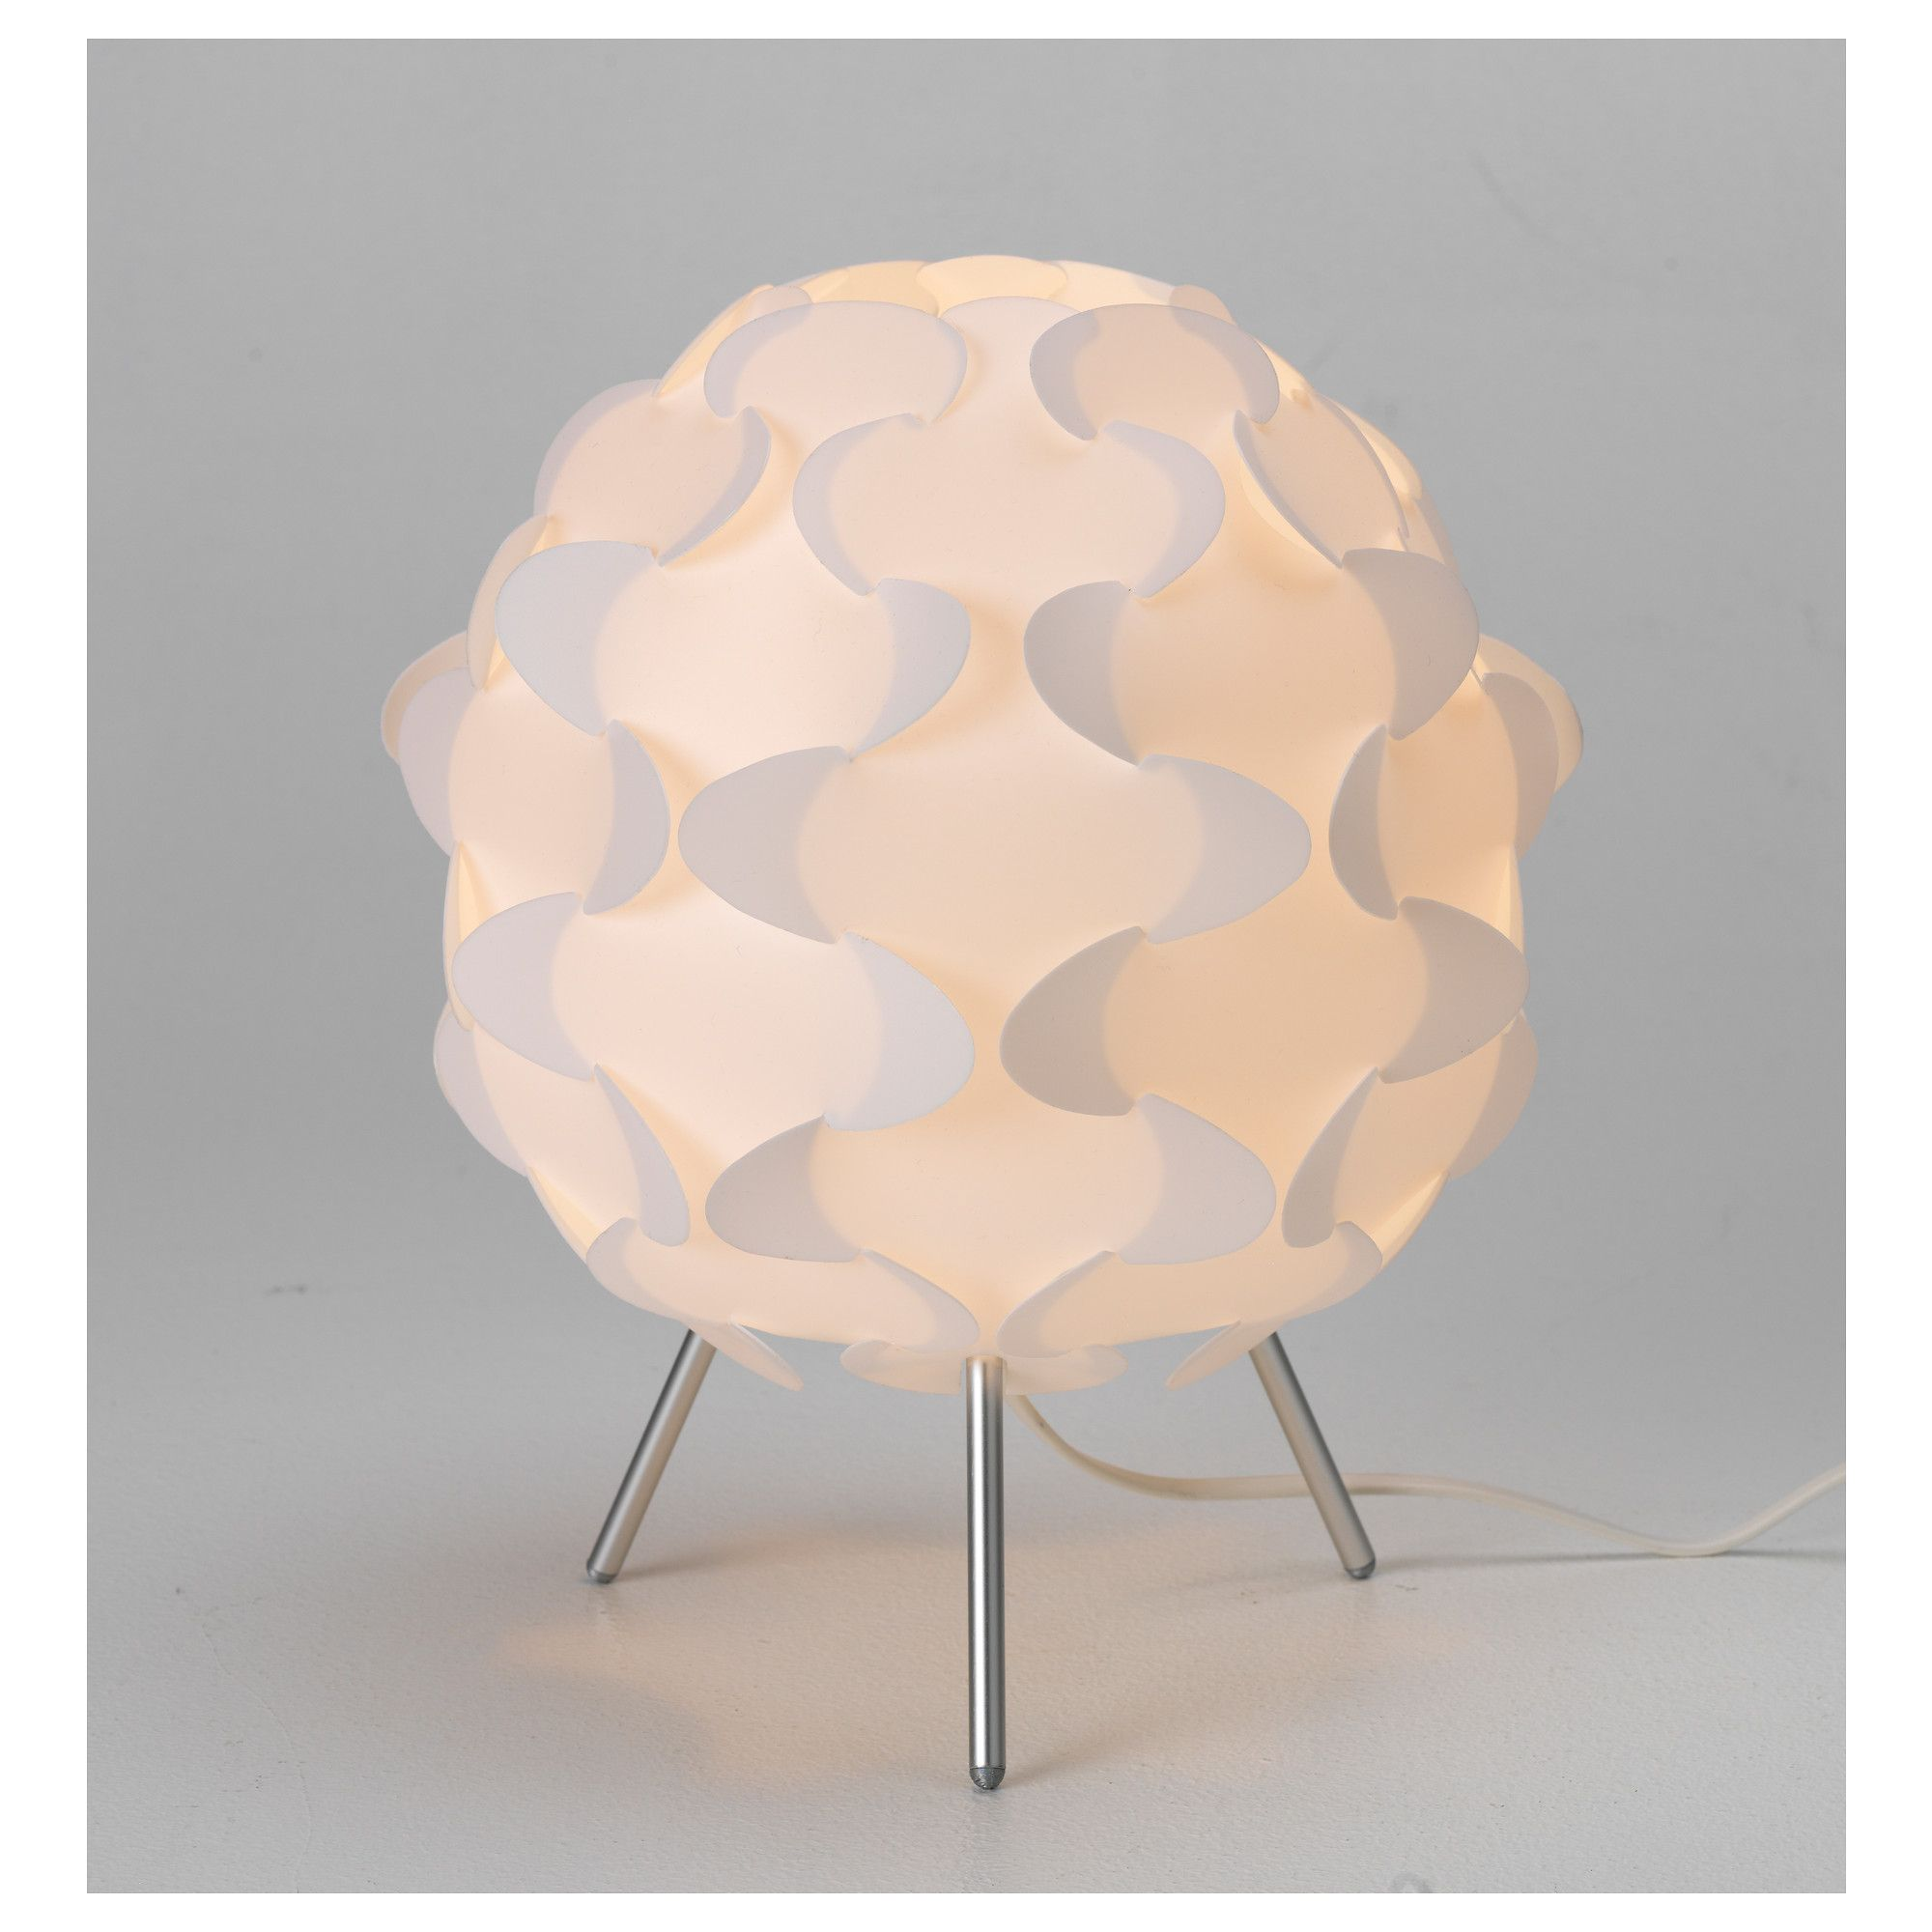 Ikea Us Furniture And Home Furnishings White Table Lamp Table Lamps For Bedroom Table Lamp